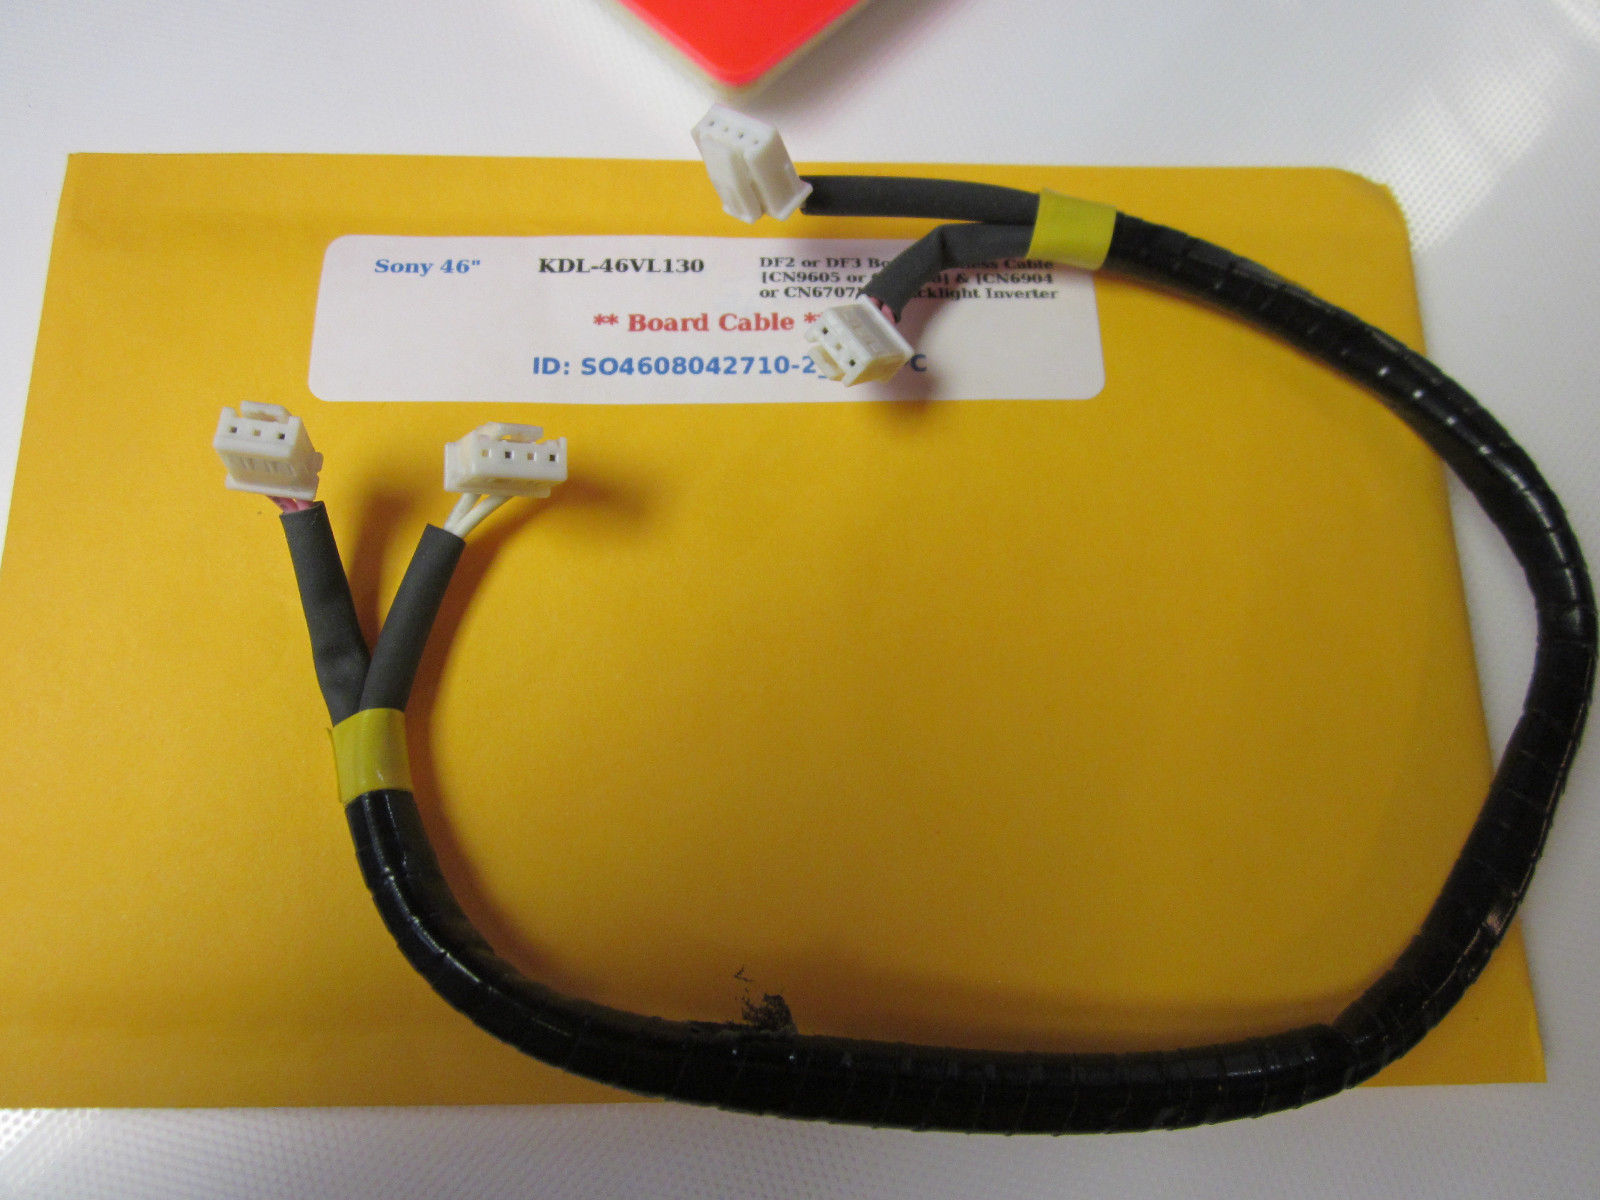 Primary image for Sony KDL-46VL130 DF2 or DF3 Board Harness Cable [CN9605 or CN6708] & [CN6904 or